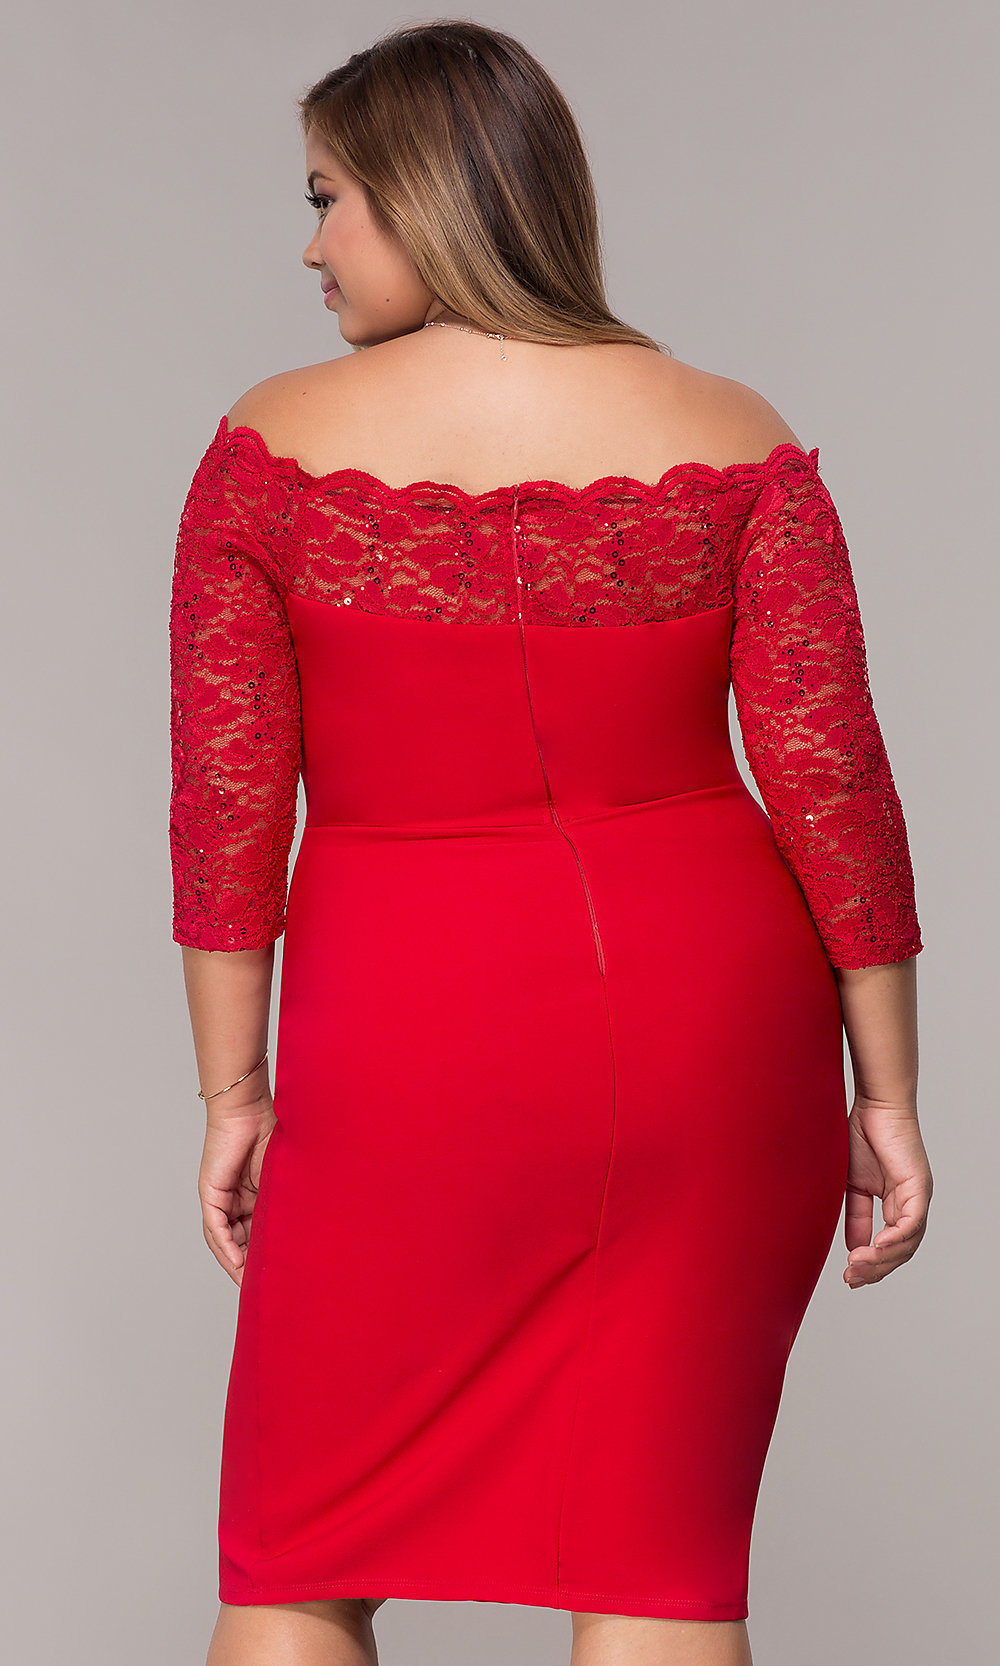 Short Plus-Size Red Party Dress with Lace Sleeves